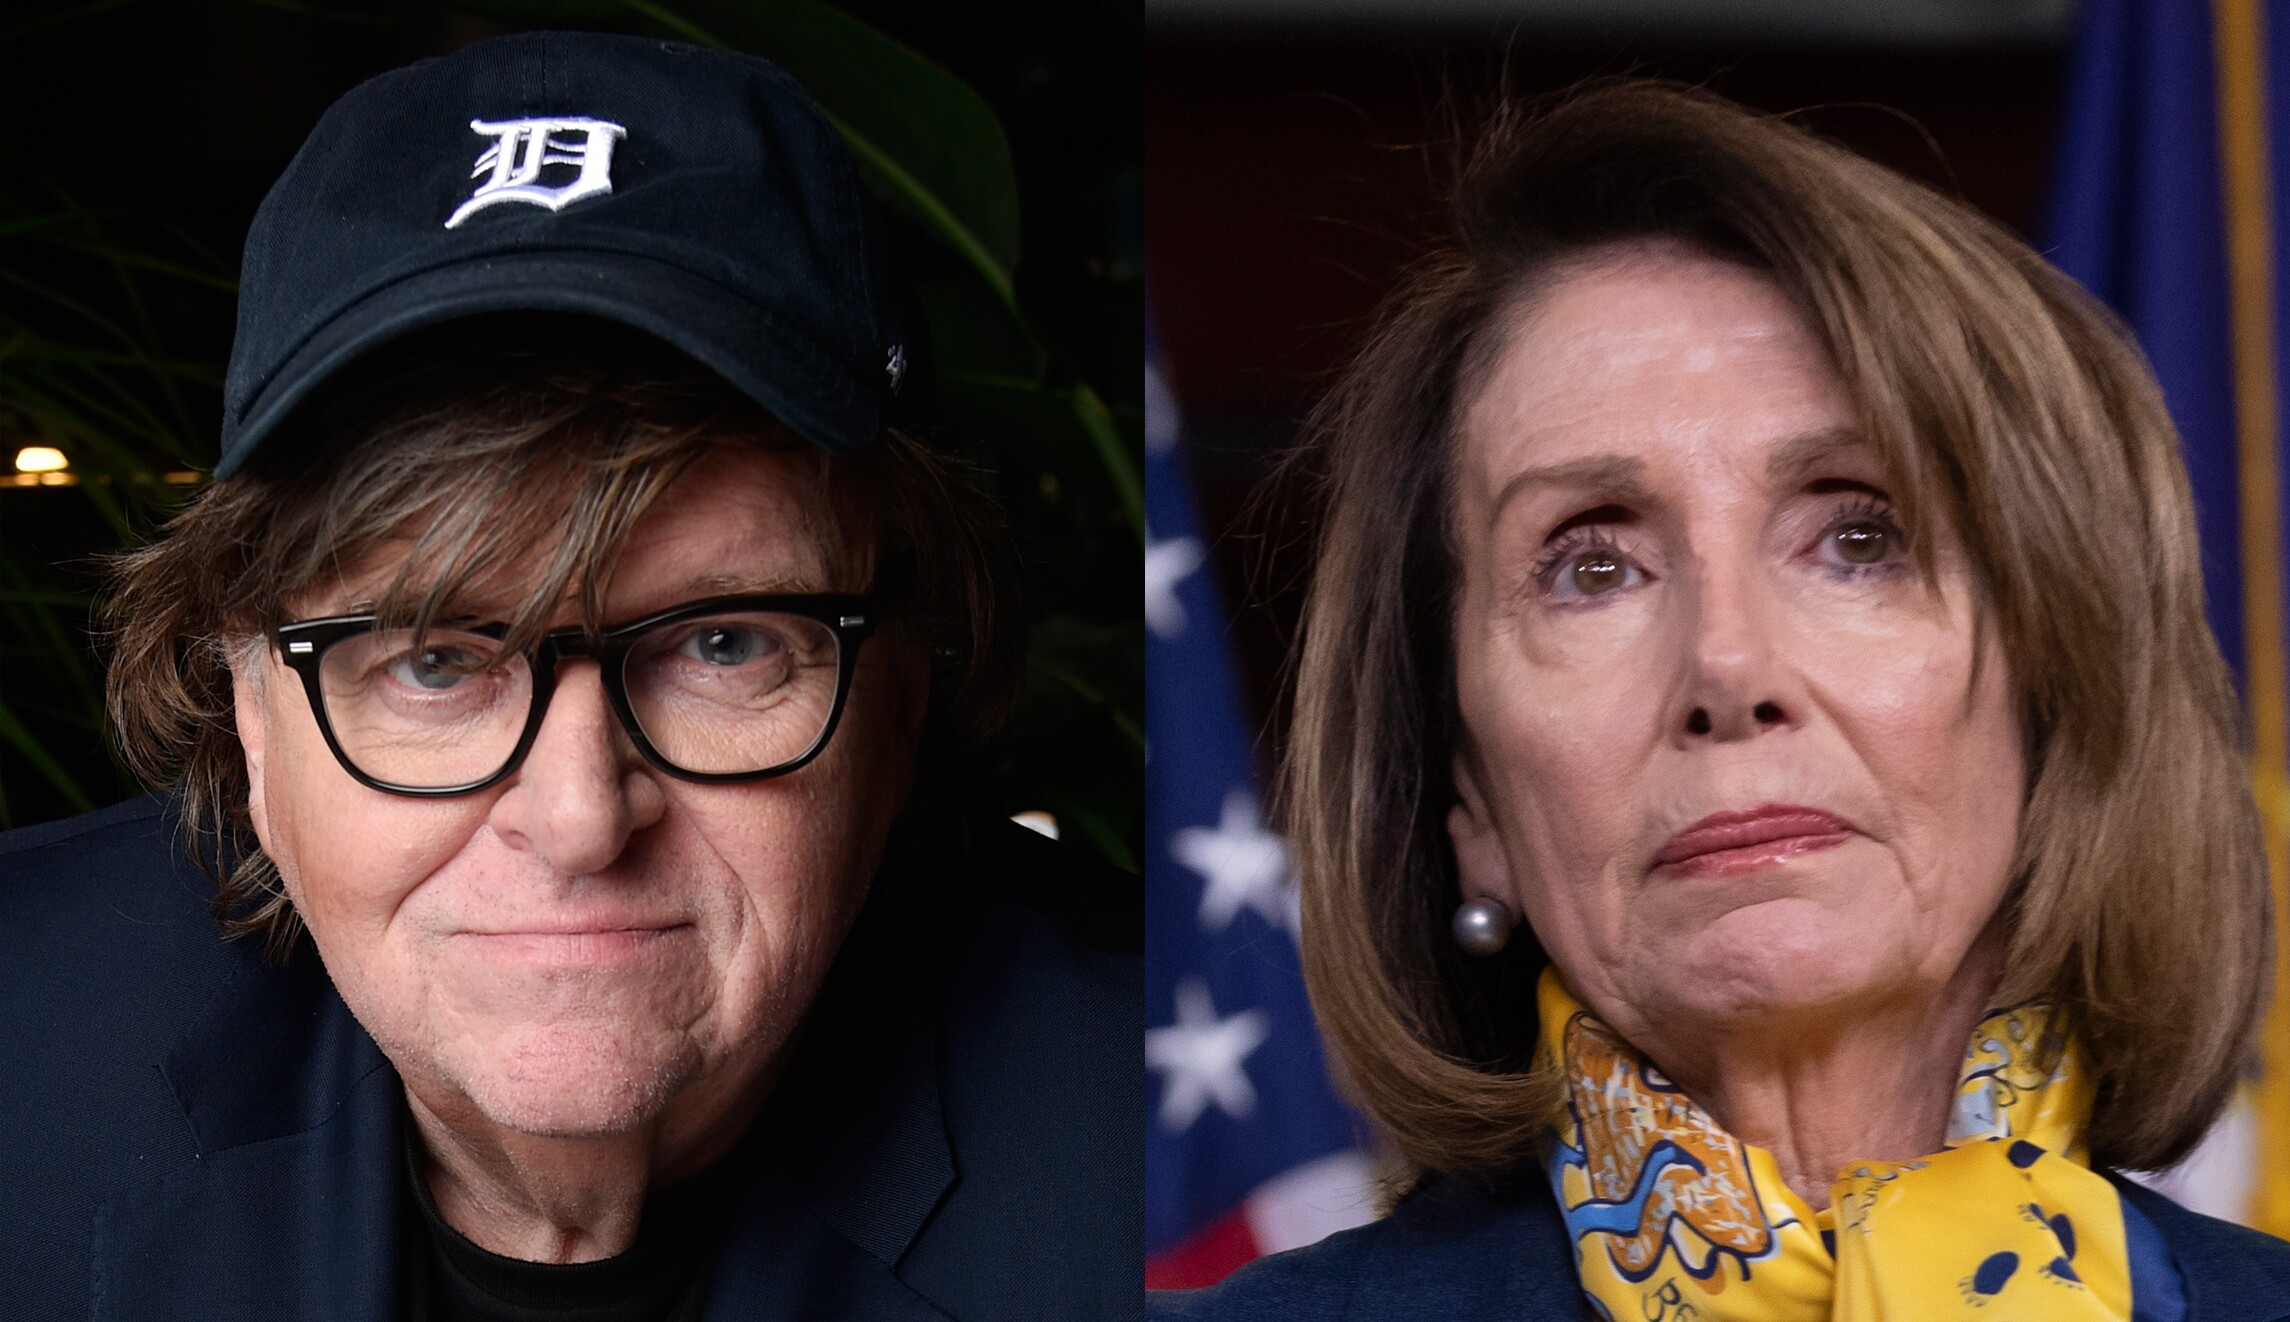 Michael Moore trashes Pelosi as 'old, tired, privileged'